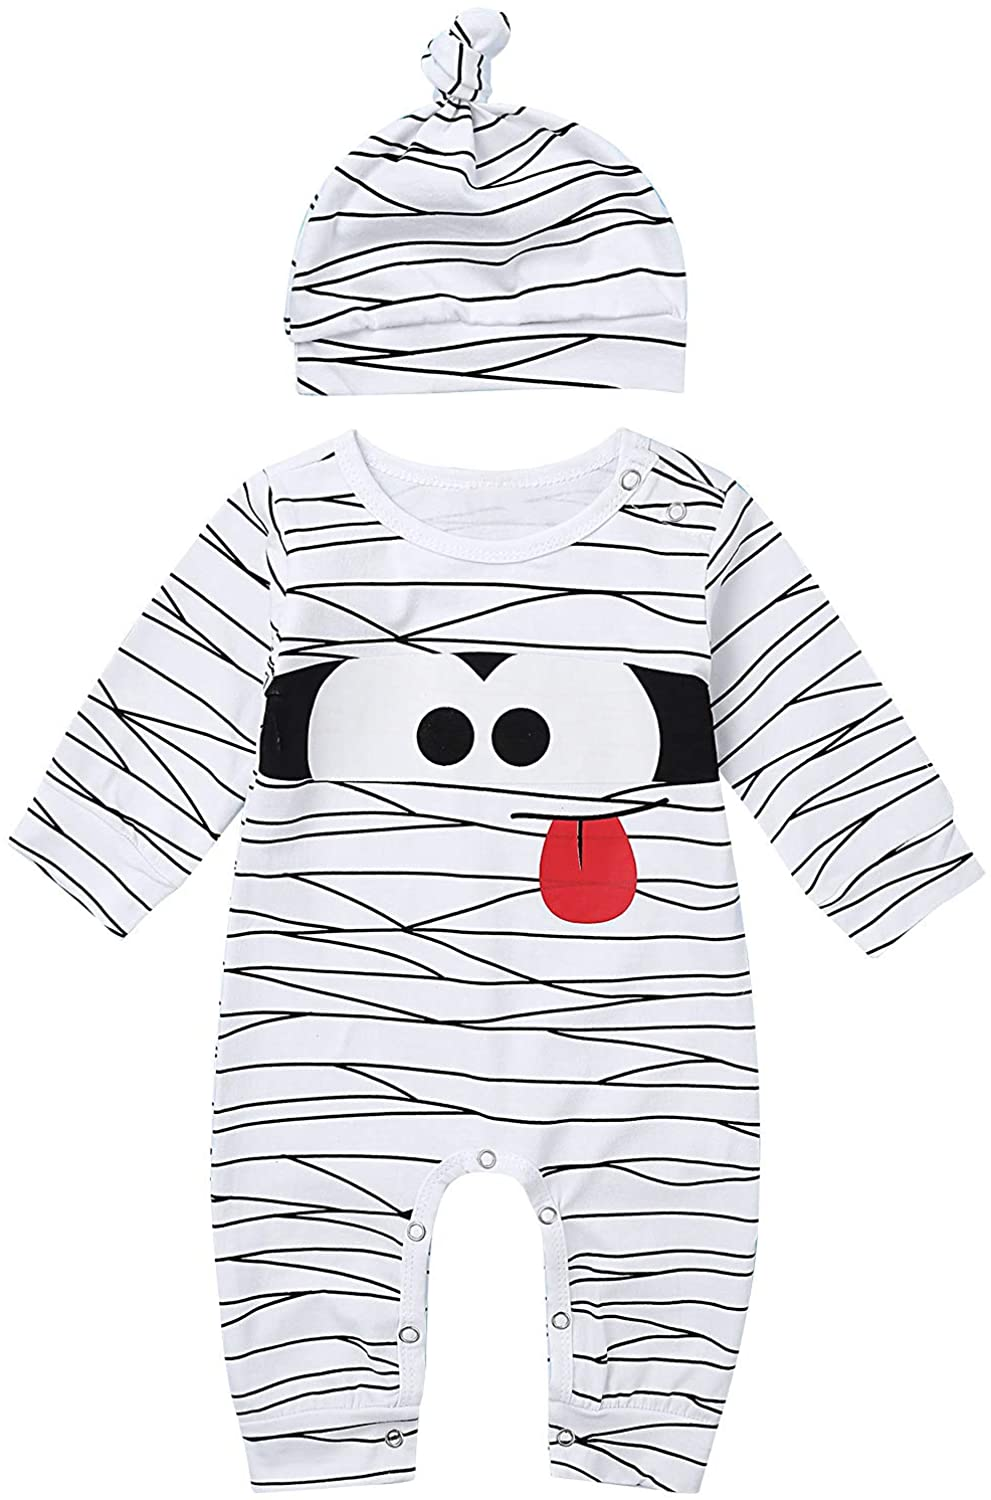 Freebily Infant Baby Boys Girls Long Sleeve Striped Romper Cartoon Animal Printed Shirt Top with Hat Sleepwear Jumpsuit